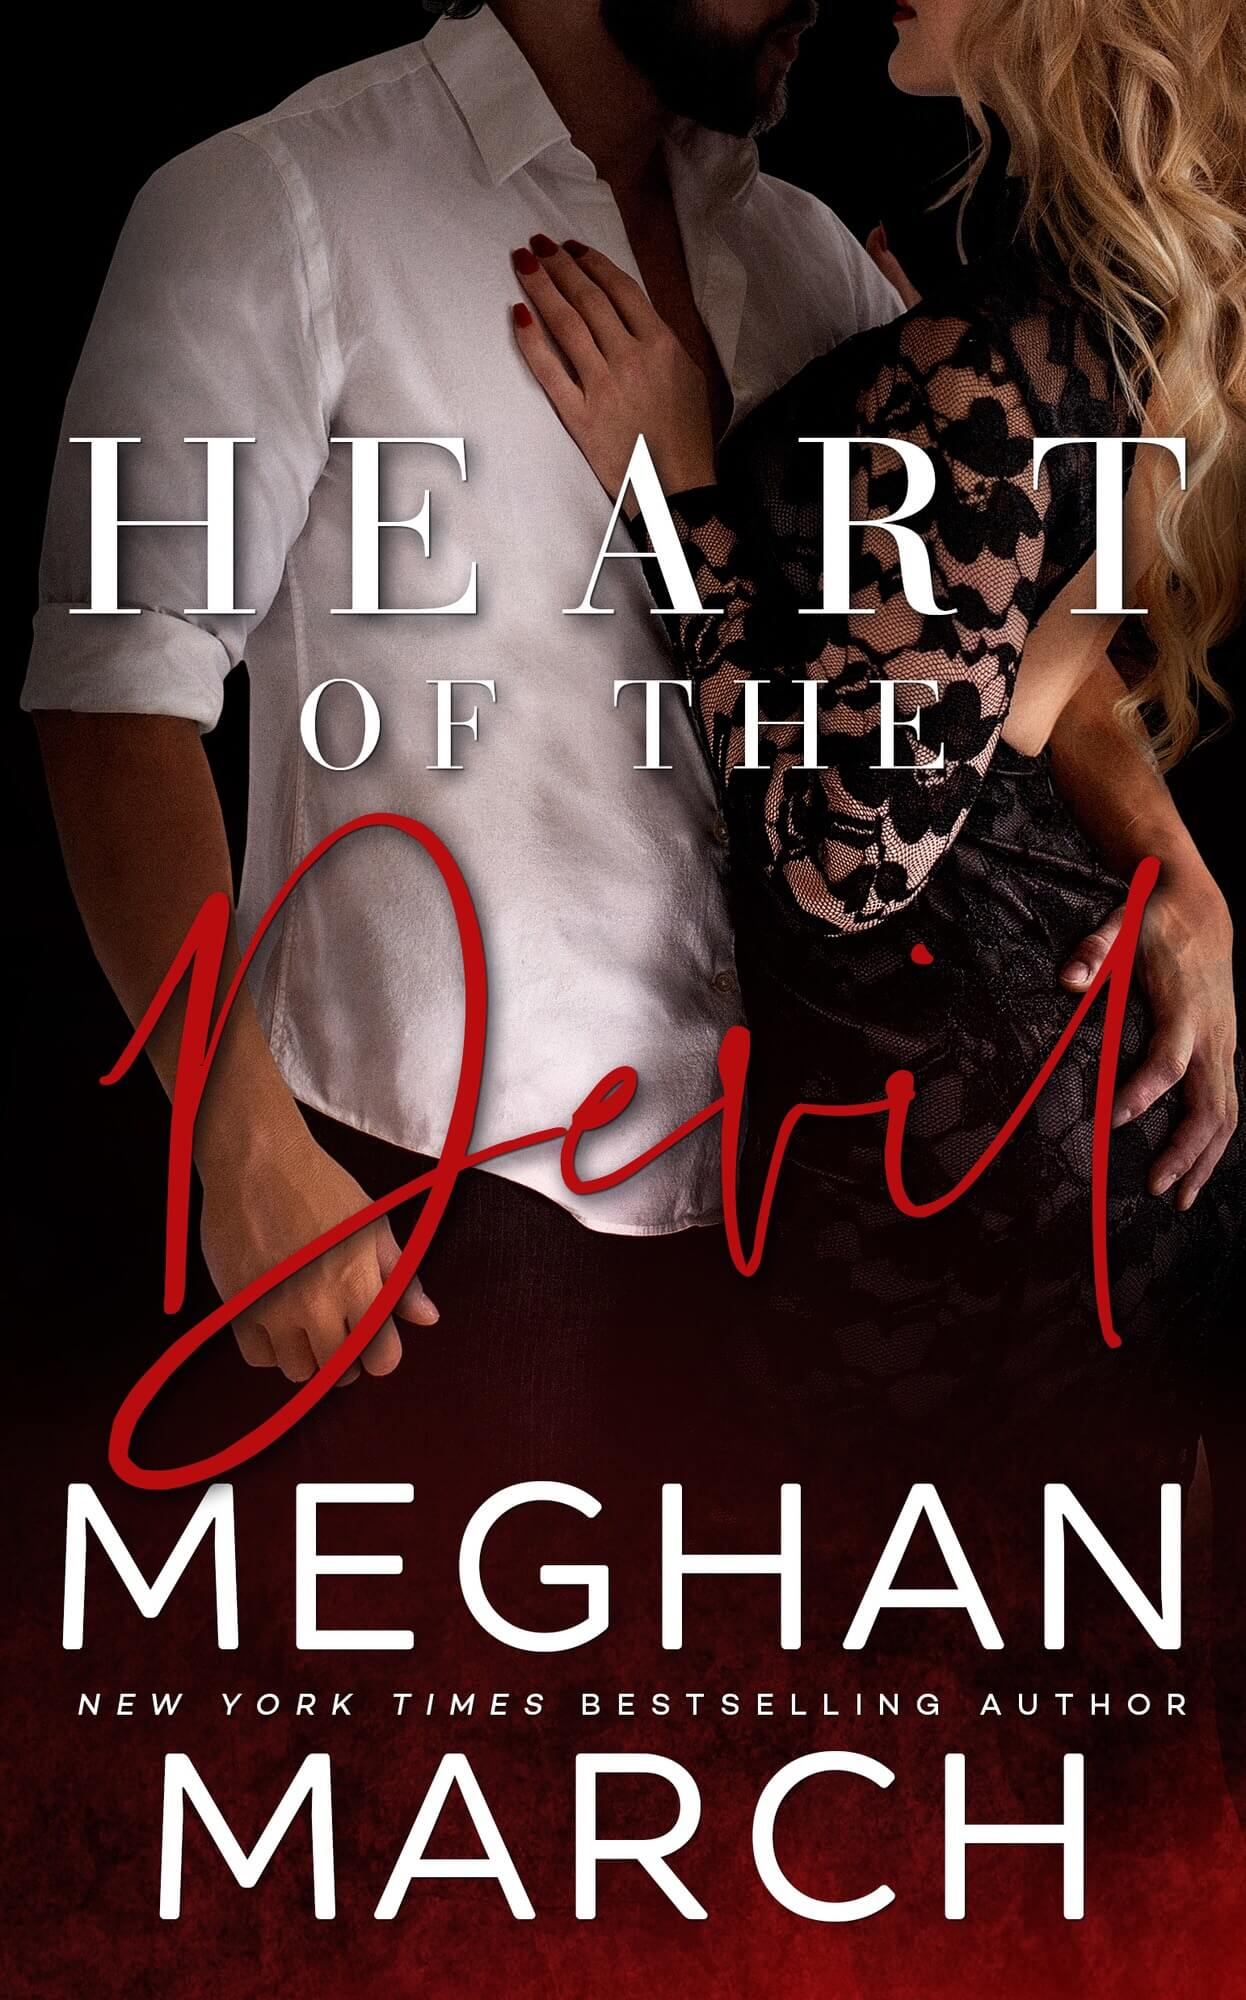 Release Blitz * Heart of the Devil (Forge trilogy book 3) by Meghan March * Giveaway * Blog Tour * Book Review